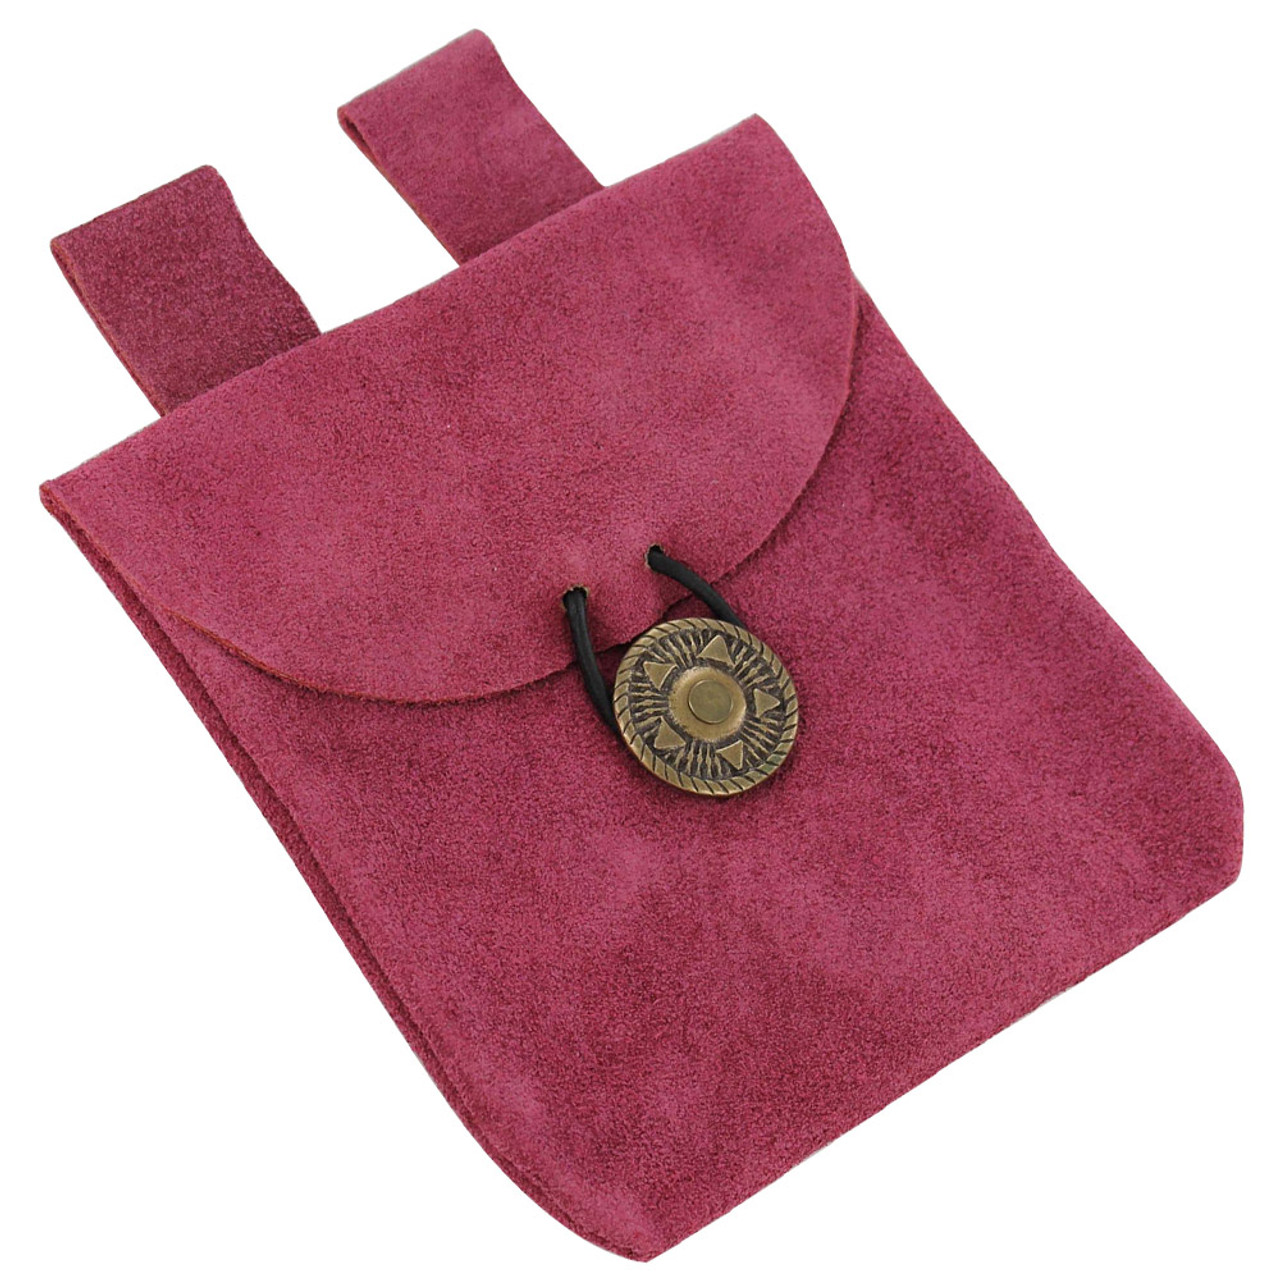 Keen Charisma Pink Suede Leather Pouch